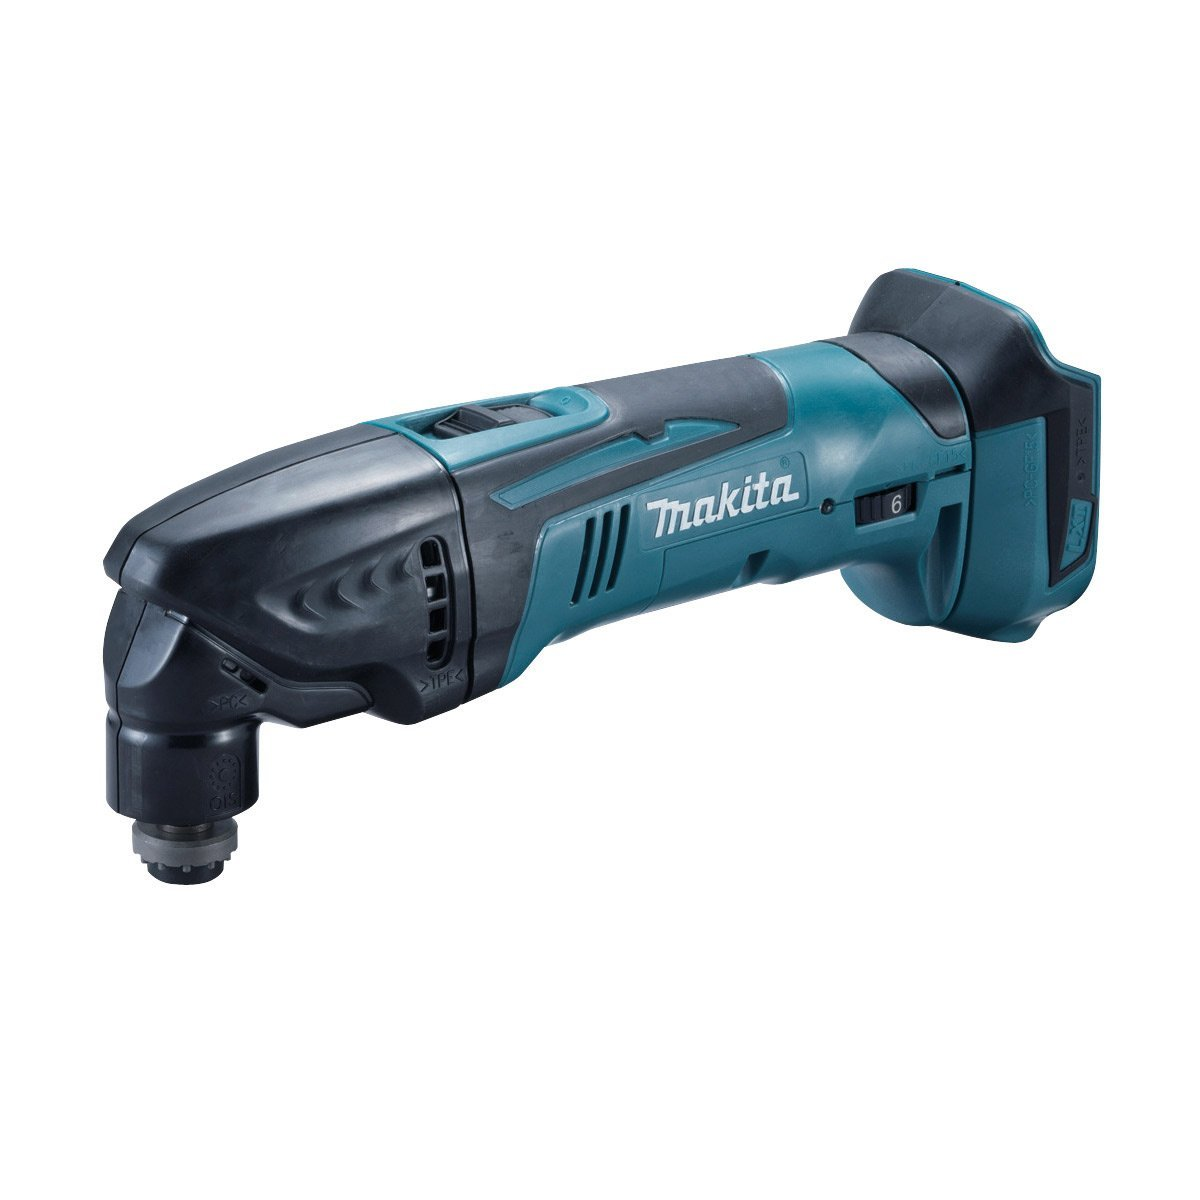 MAKITA 18V Li-oN BODY ONLY MULTITOOL